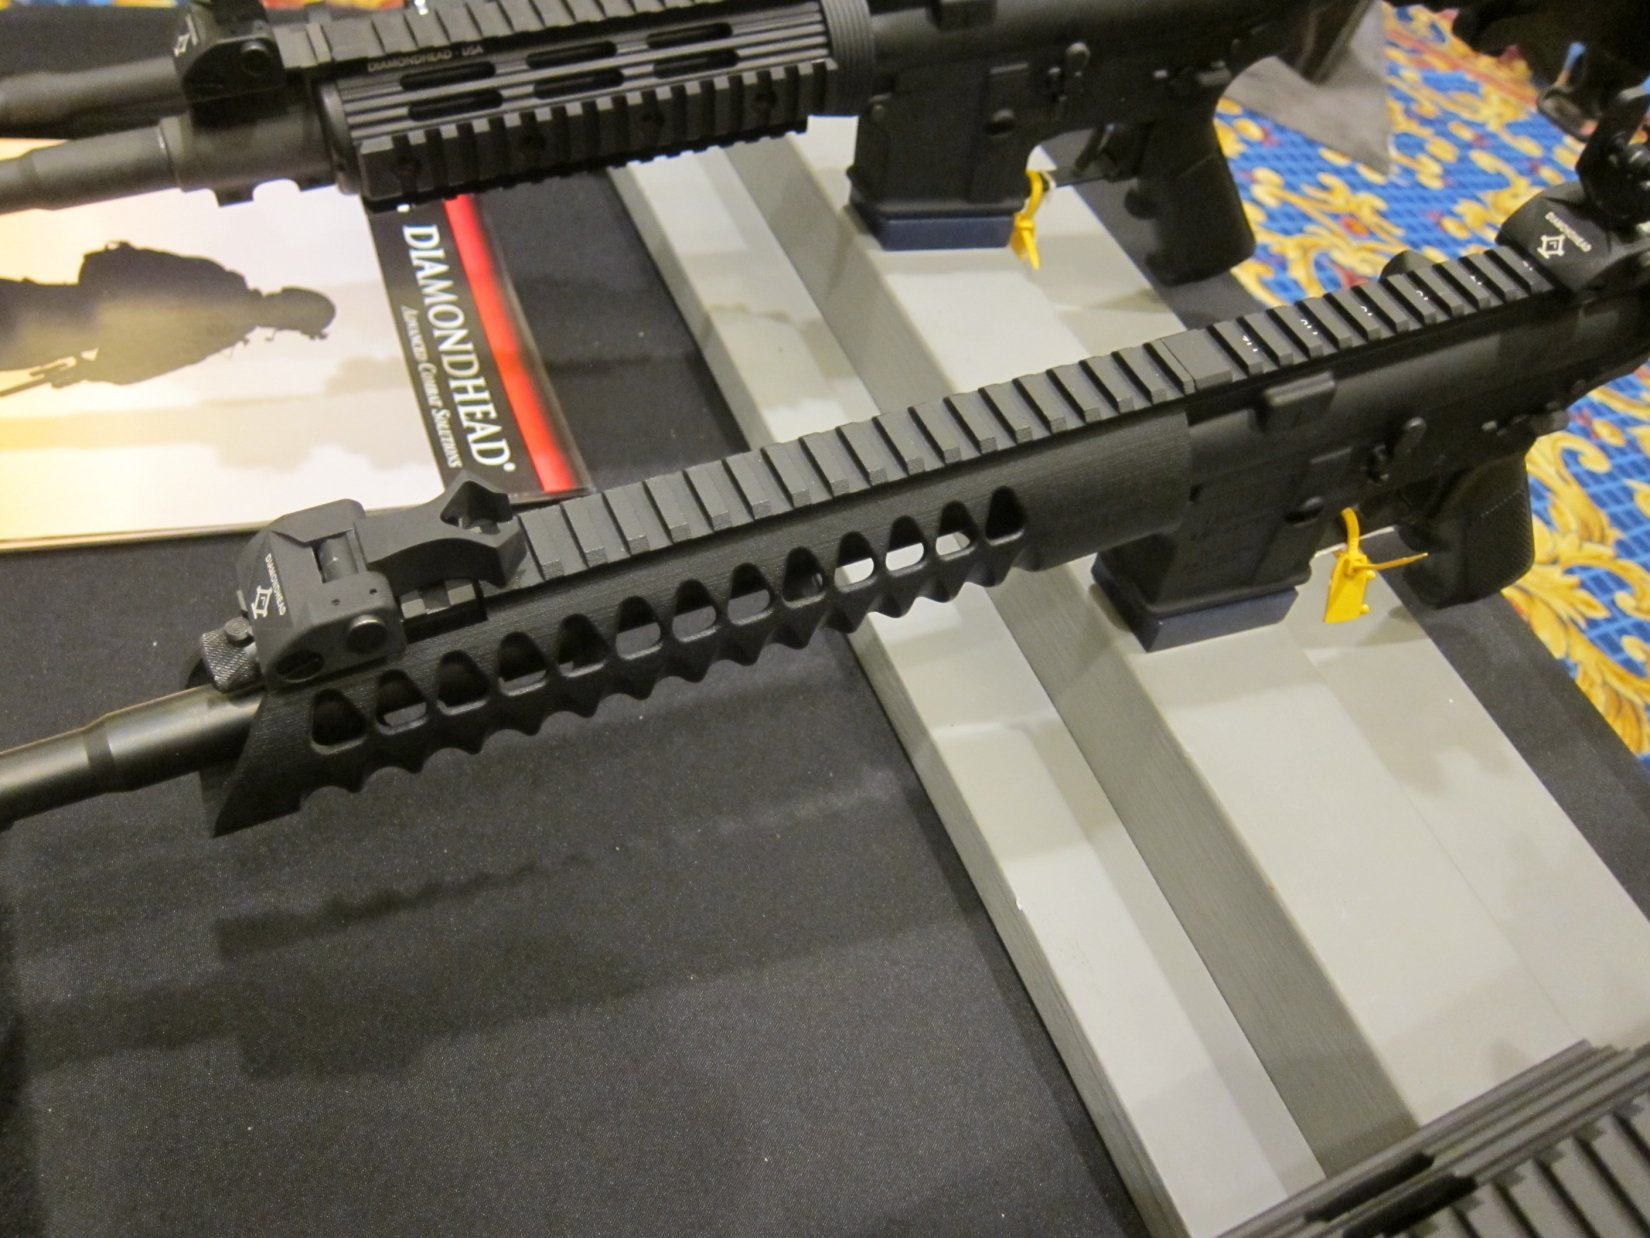 Diamondhead USA V RS T TD Versa Rail System Lightweight Free Float Triangular Modular Rail Tactical Handguard SHOT Show 2012 DefenseReview.com DR 2 Diamondhead USA V RS T/TD Versa Rail System Lightweight Free Float Triangular Tactical Handguard/Modular Rail System for Tactical AR 15 Carbine/SBRs at SHOT Show 2012 (Video!)